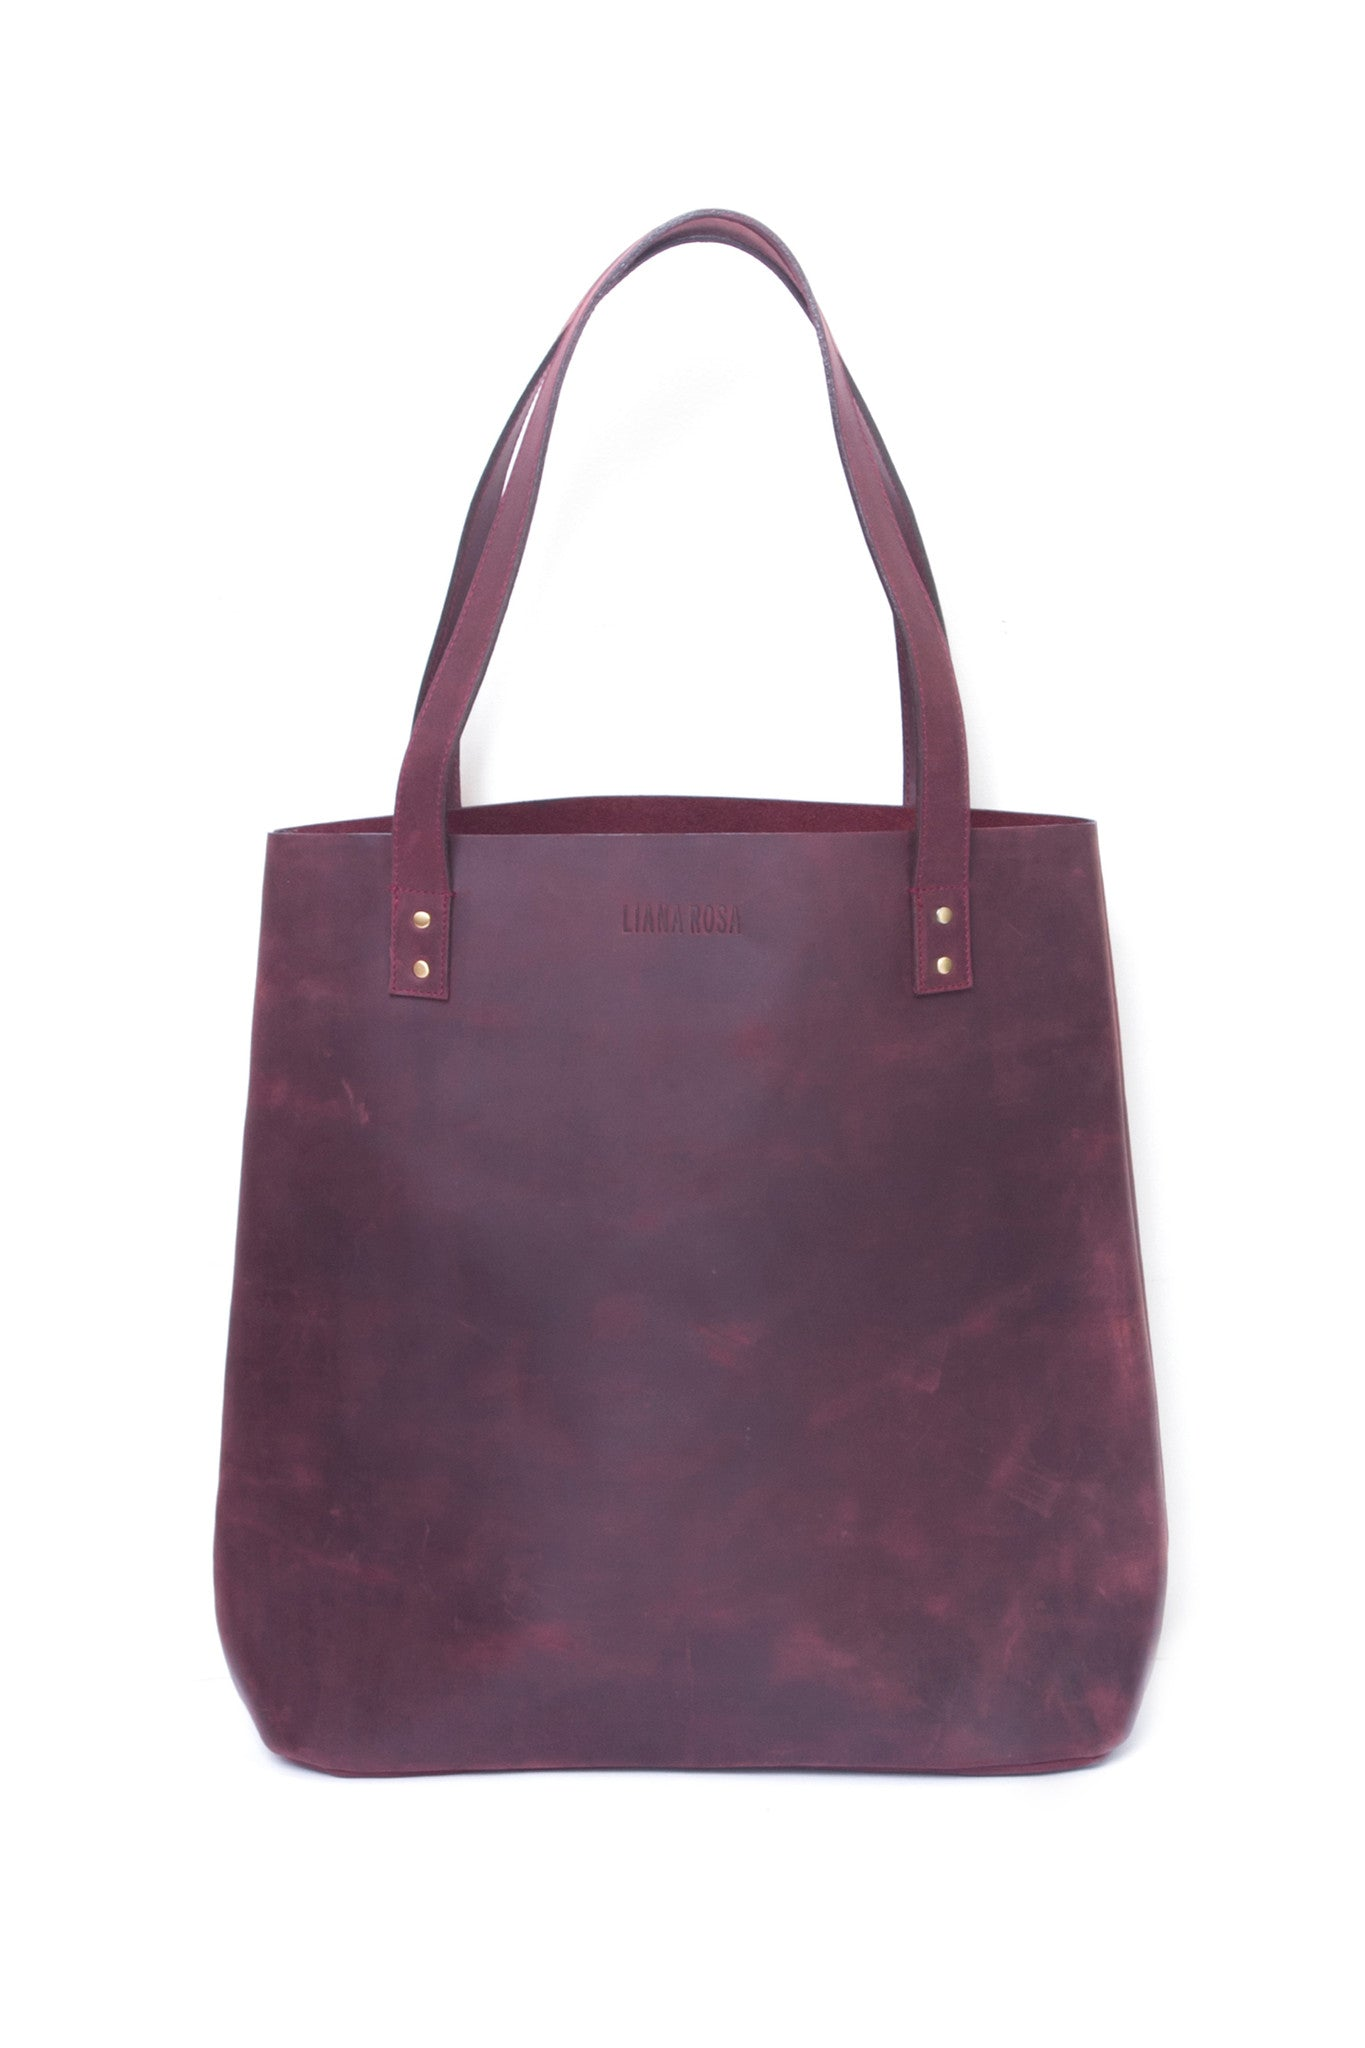 Henry Sangria Burgundy Leather Tote Bag by Liana Rosa